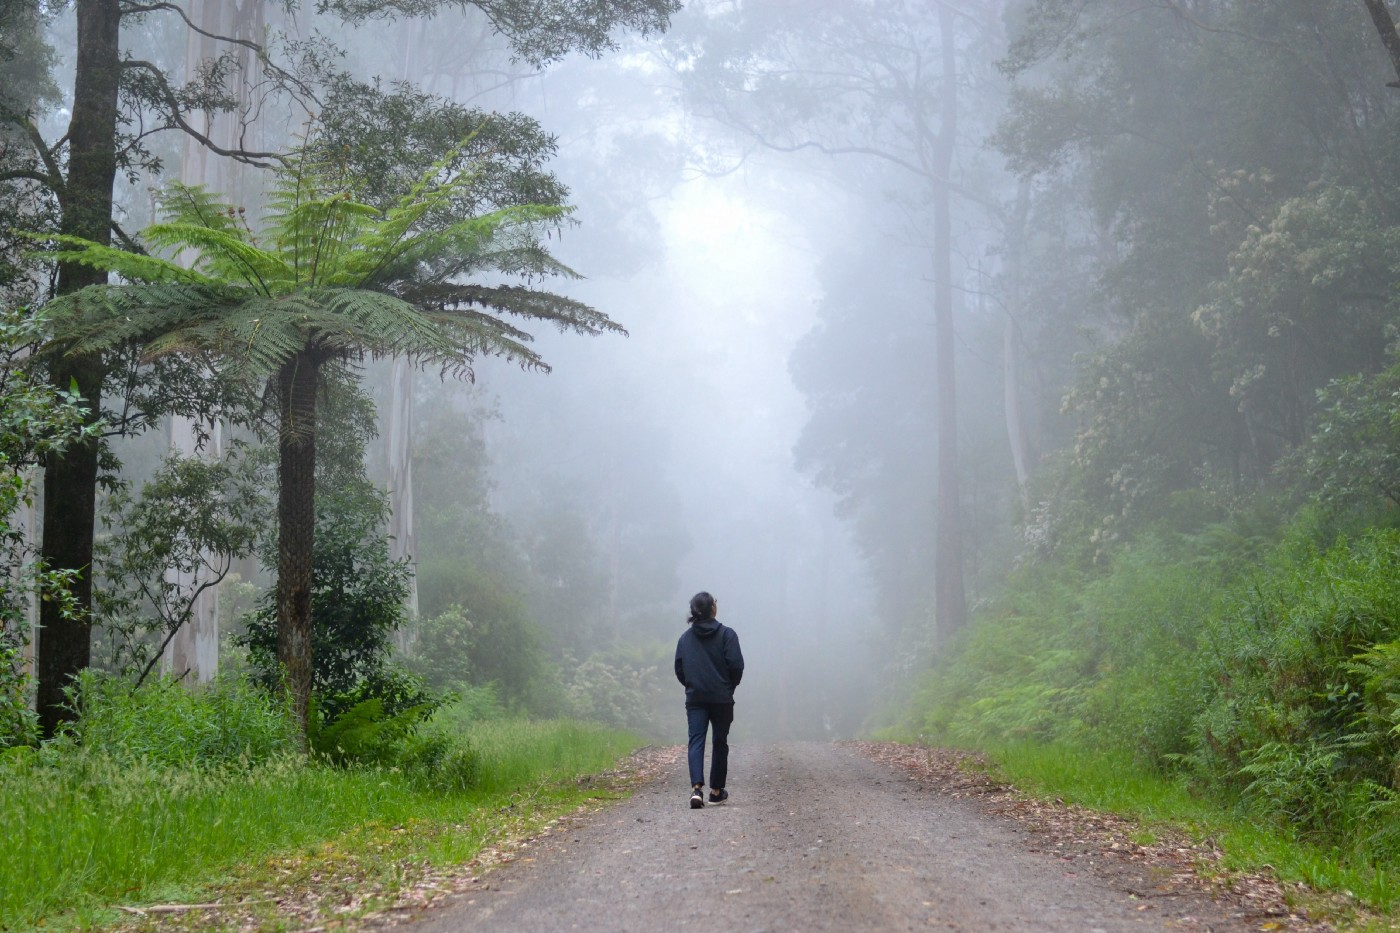 A lone figure walks down a dirt road in a misty forest.